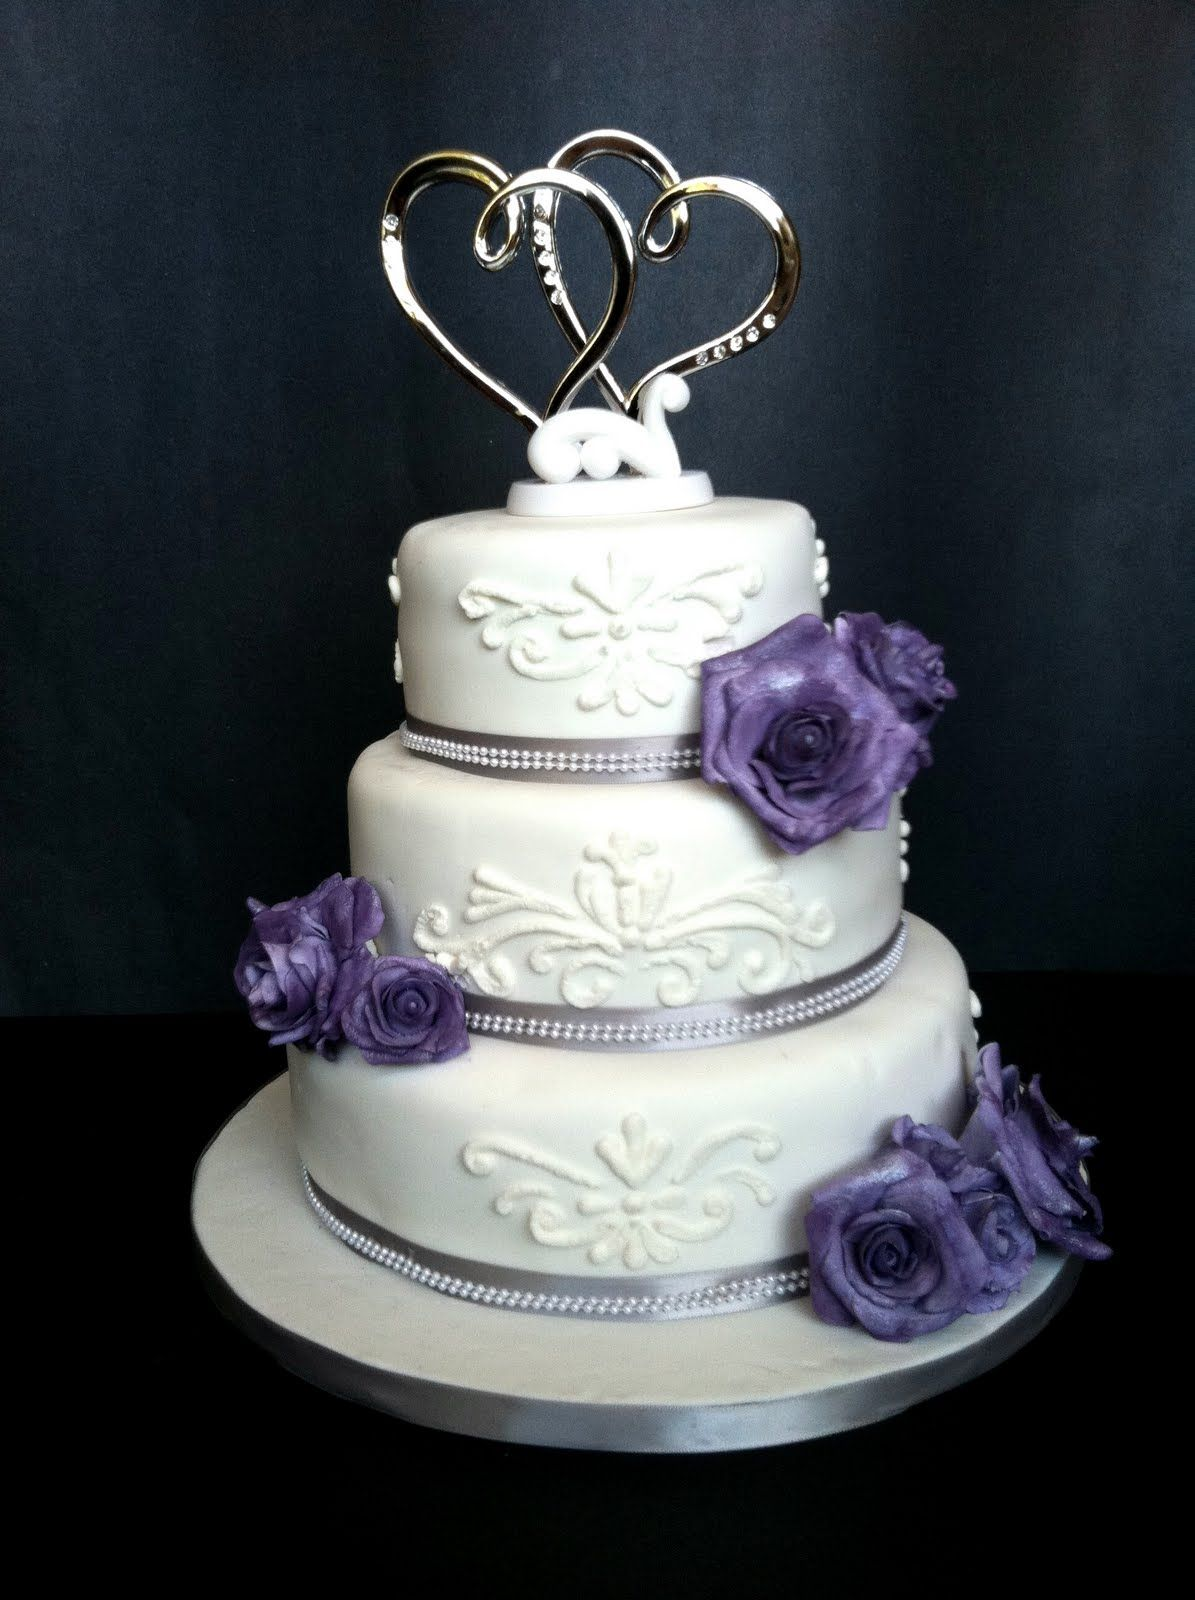 fondant wedding cake decorating ideas | tier cake covered in ...